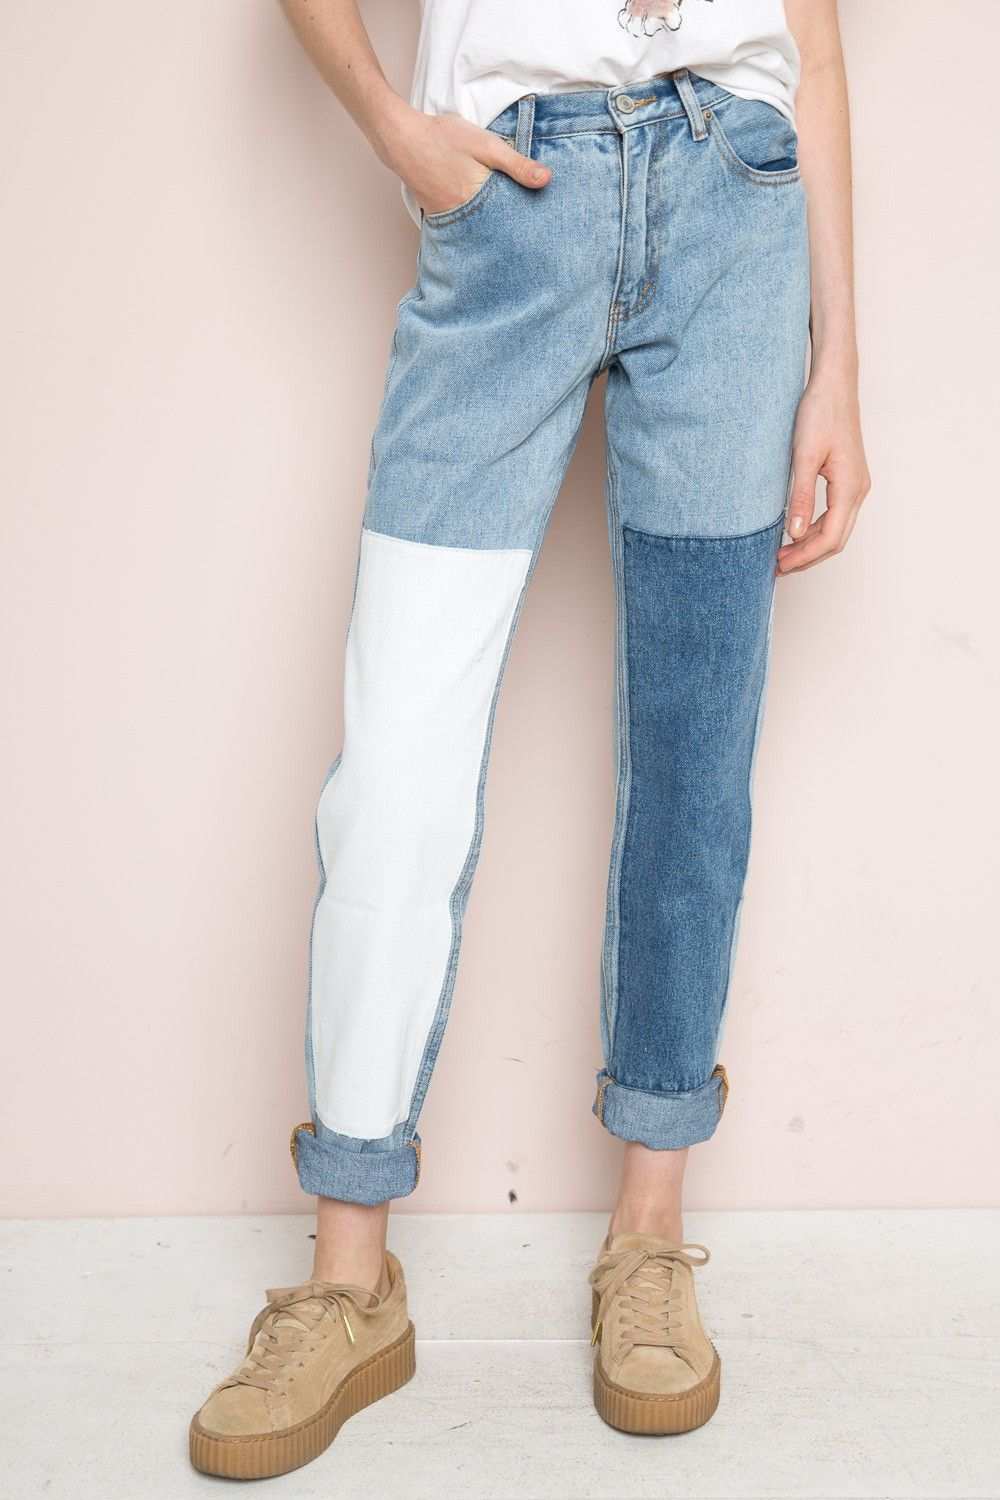 i love jeans Denim Pants Outfit 8348ca47f8ab